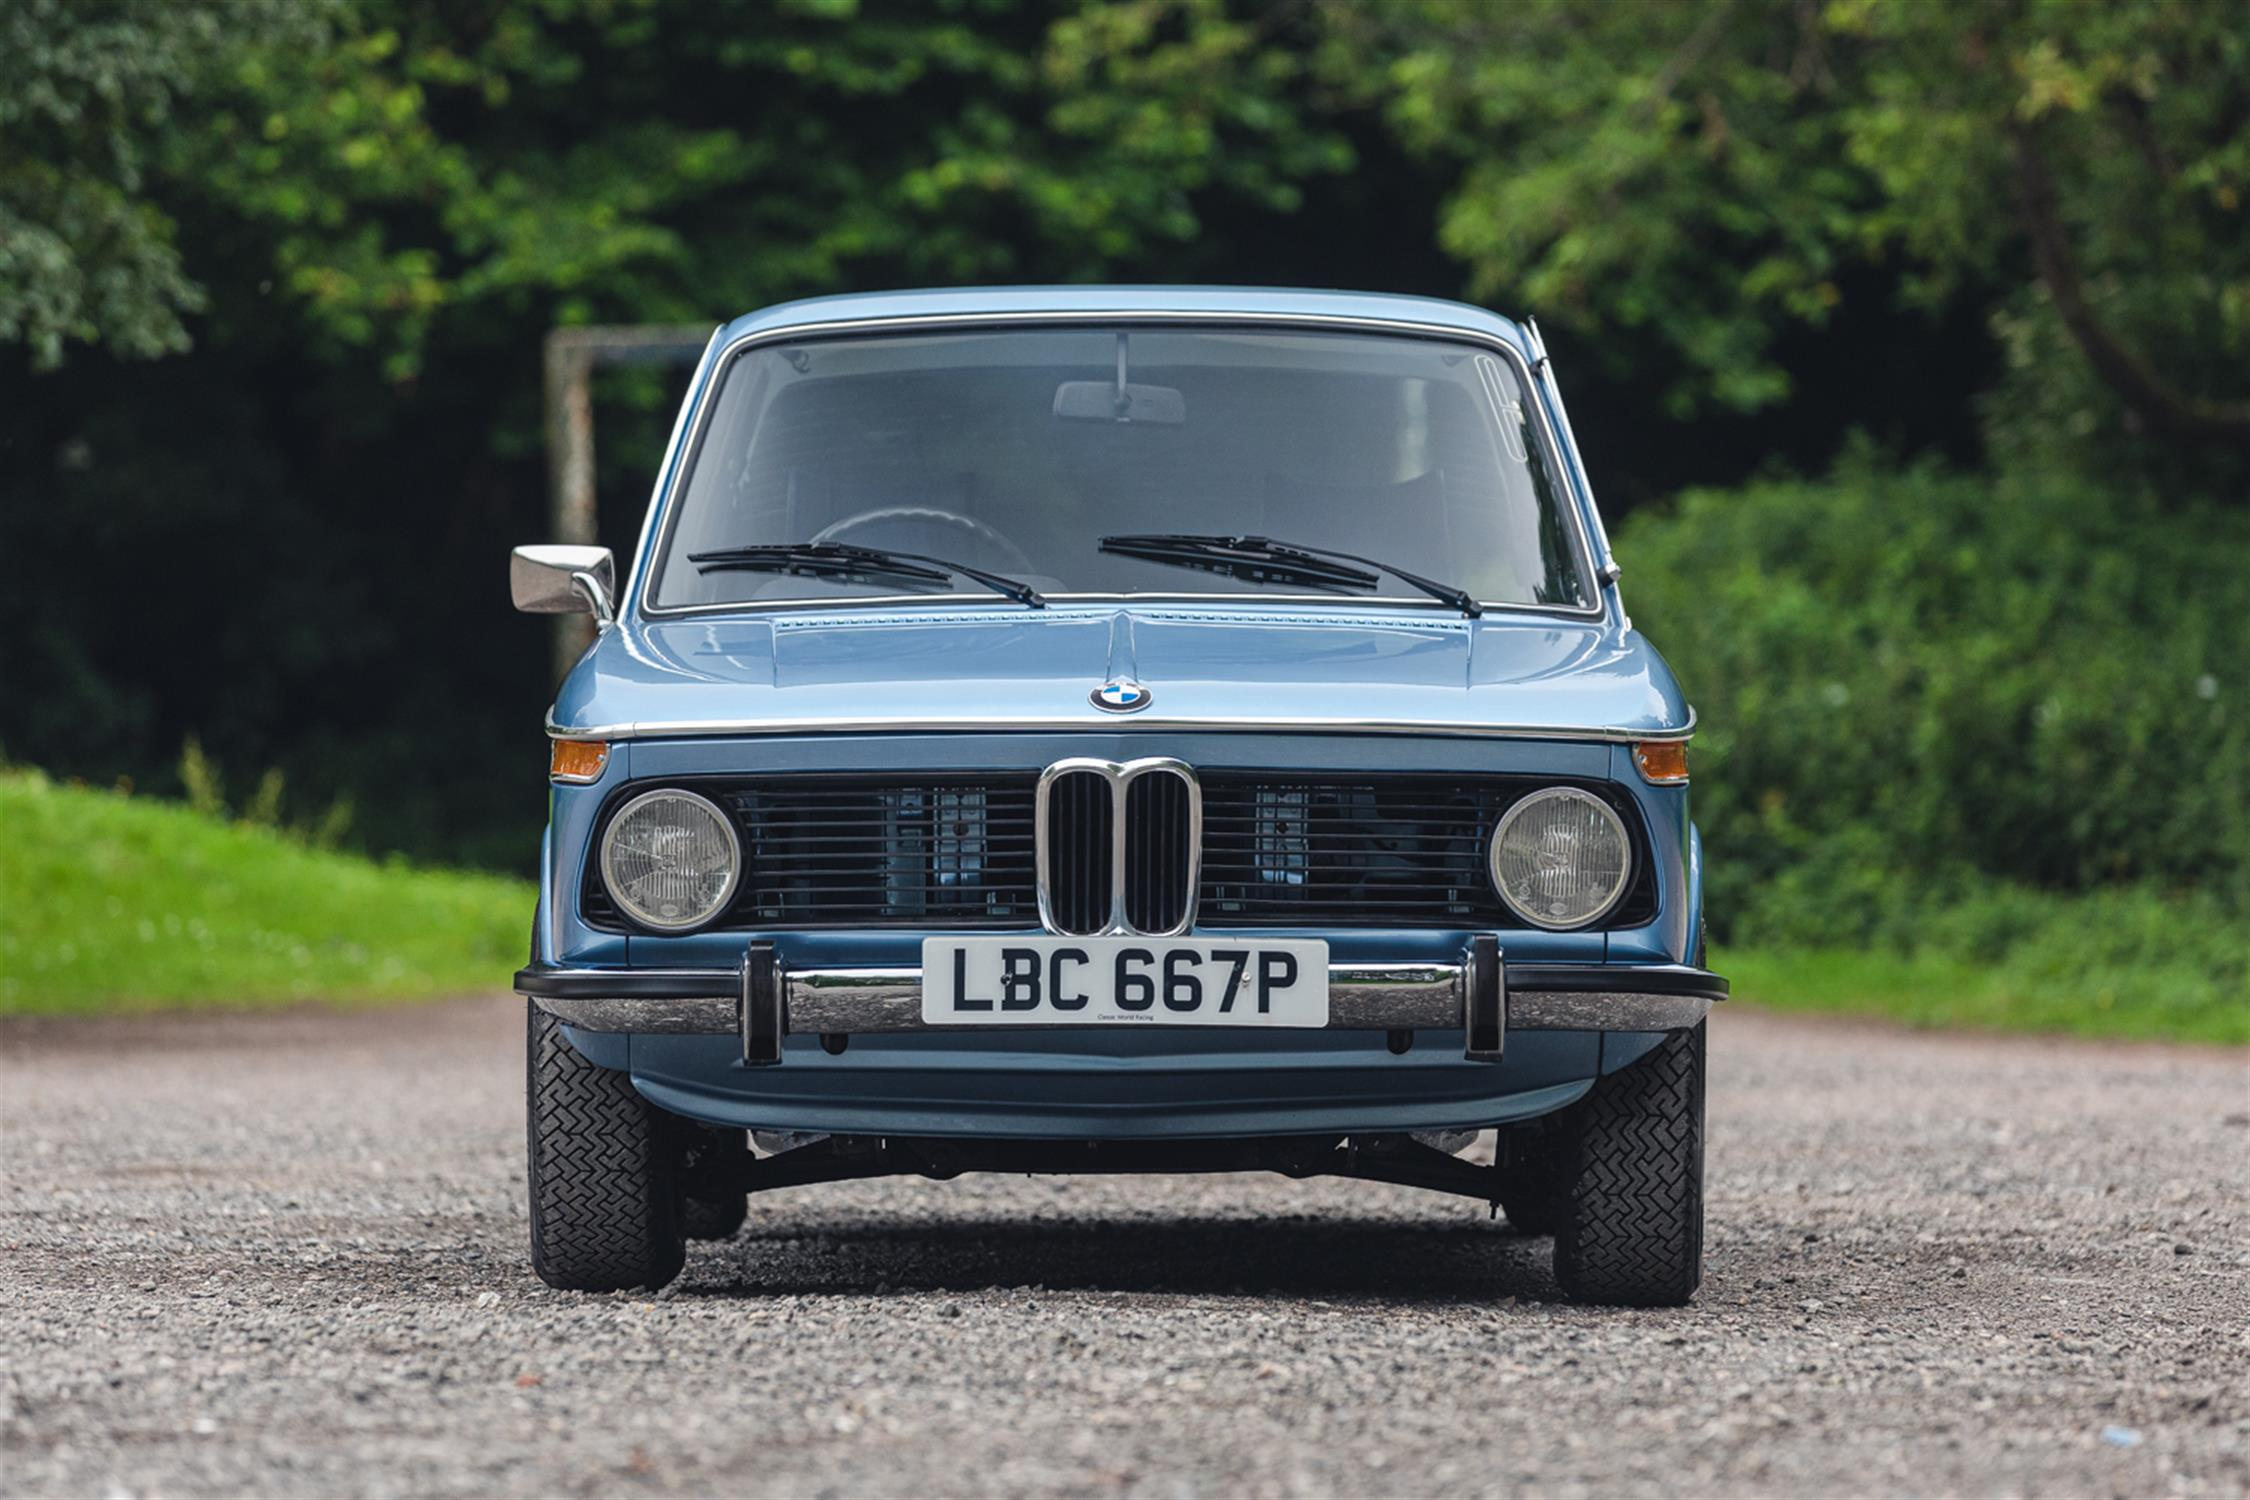 1975 BMW 2002 Tii - Image 8 of 10